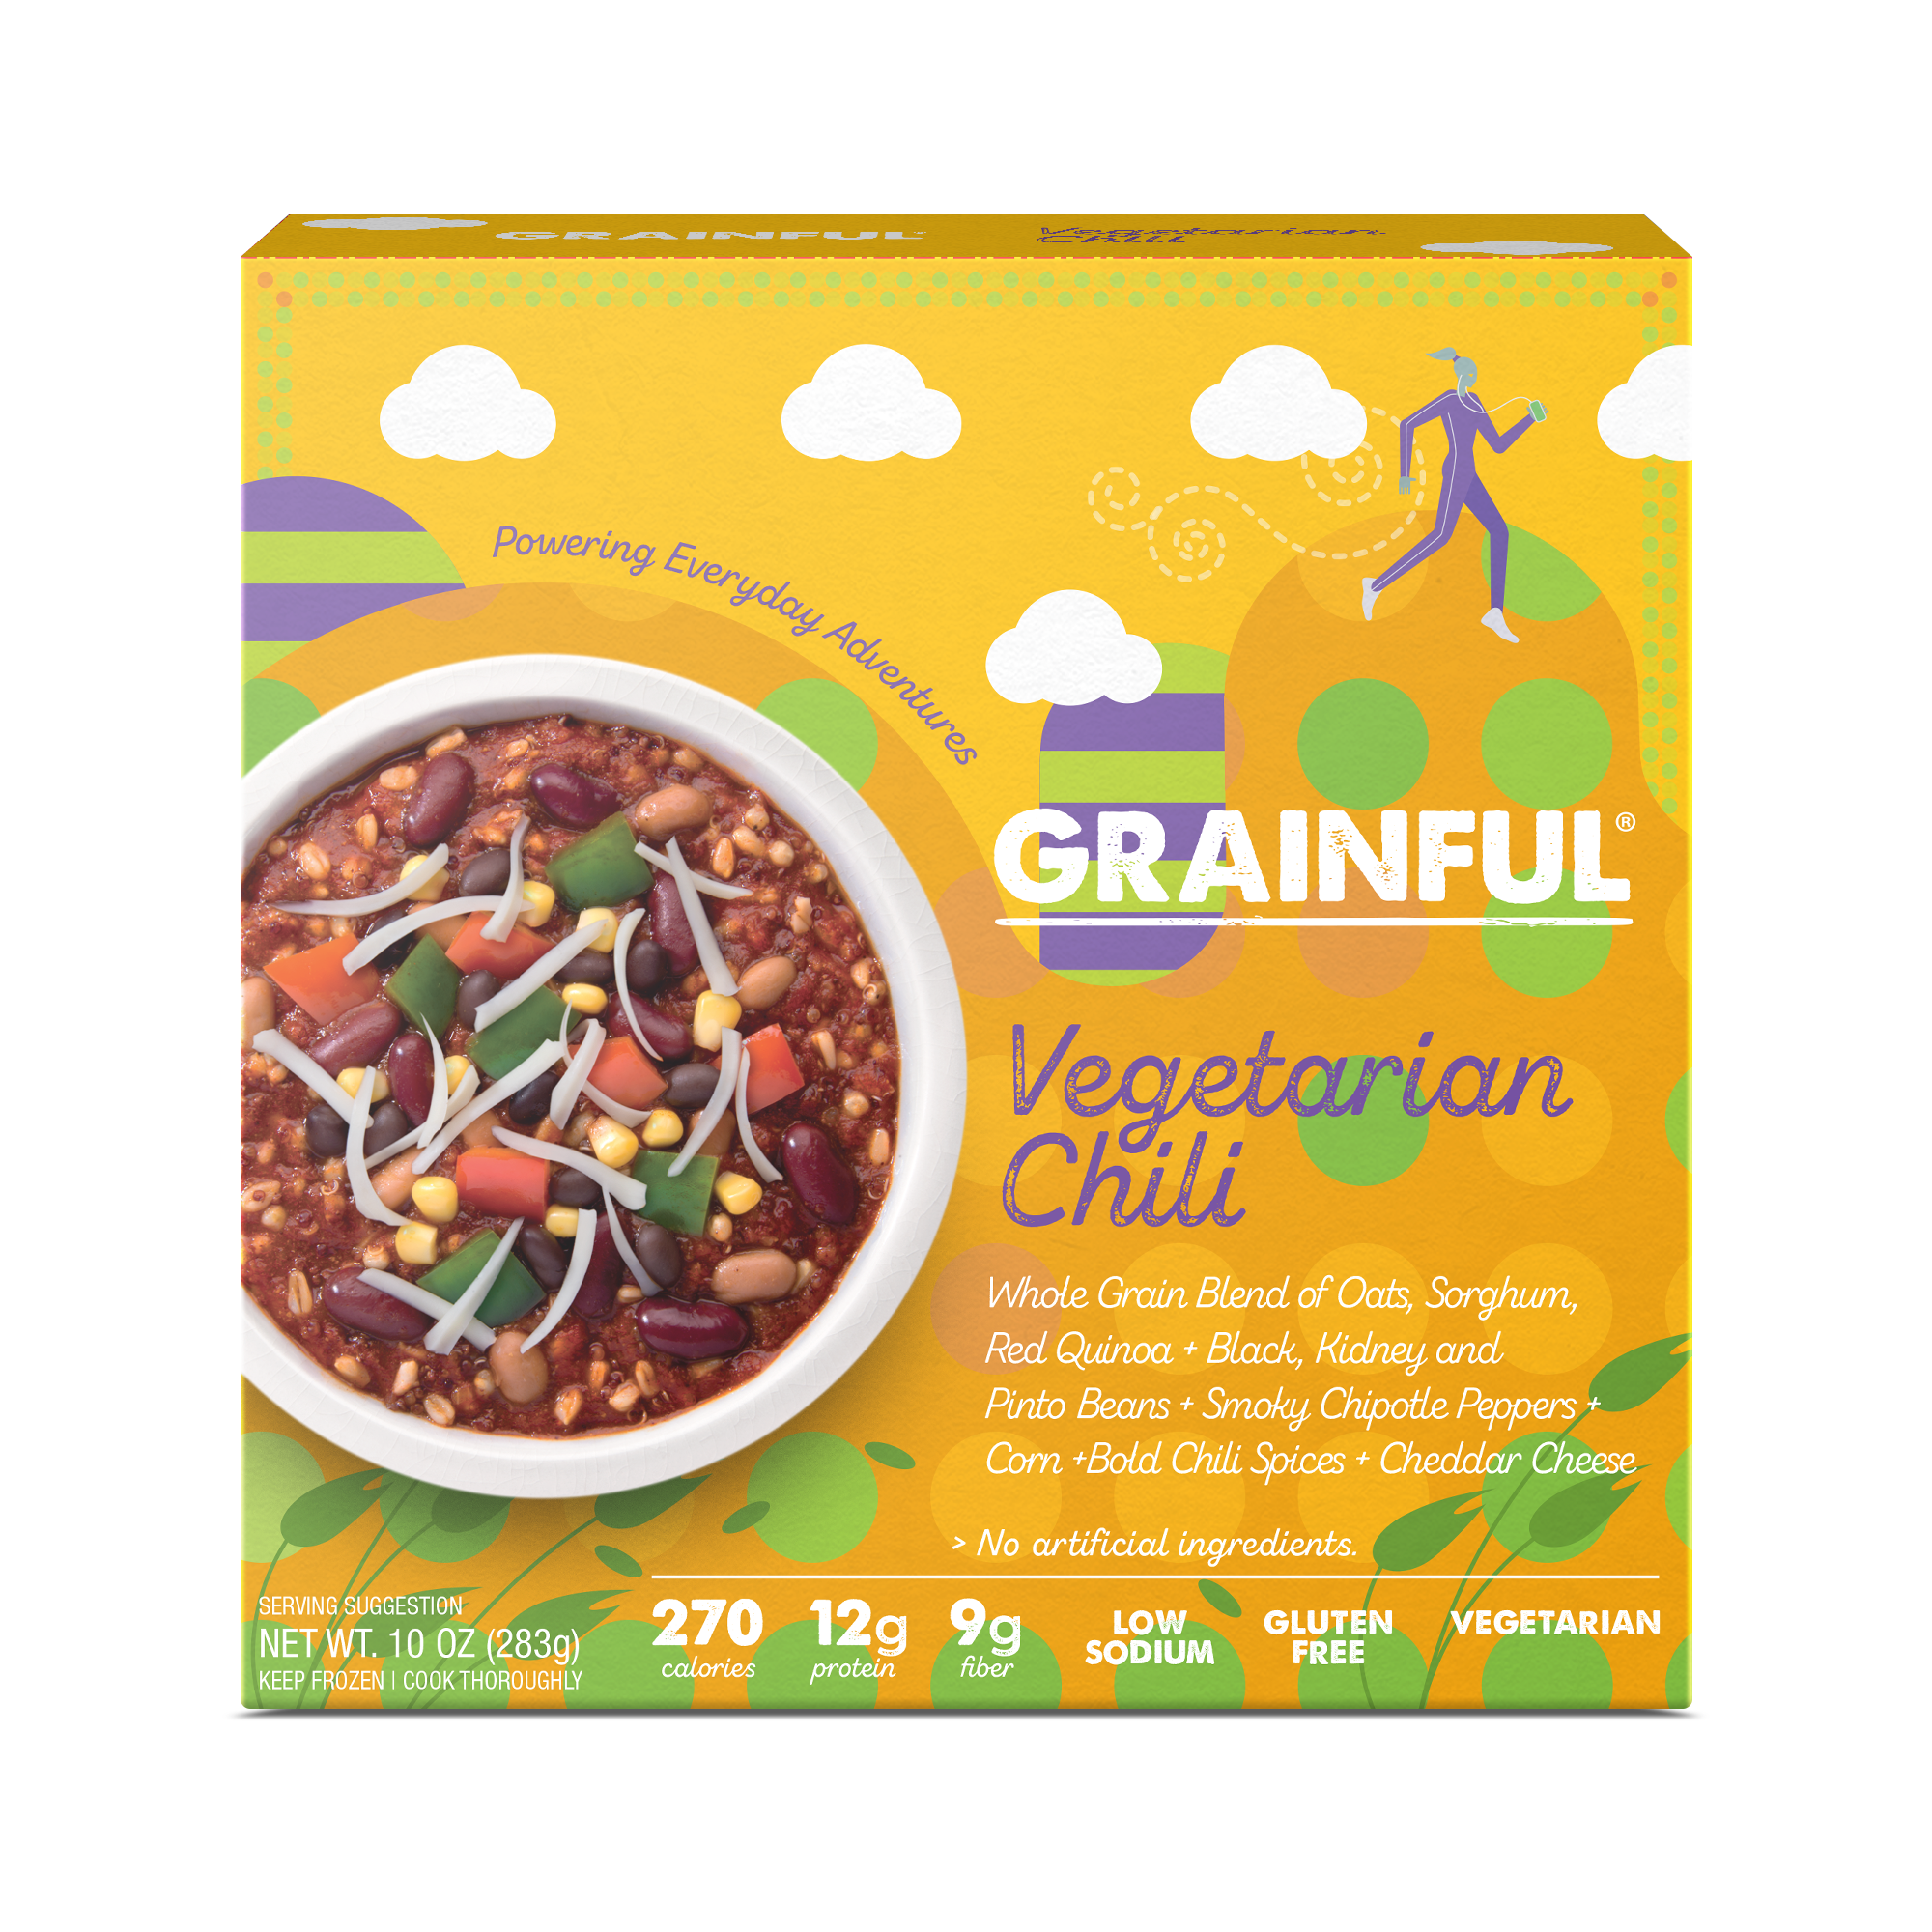 Grainful Target 3D Mockup_v1_Vegetarian Chili.png